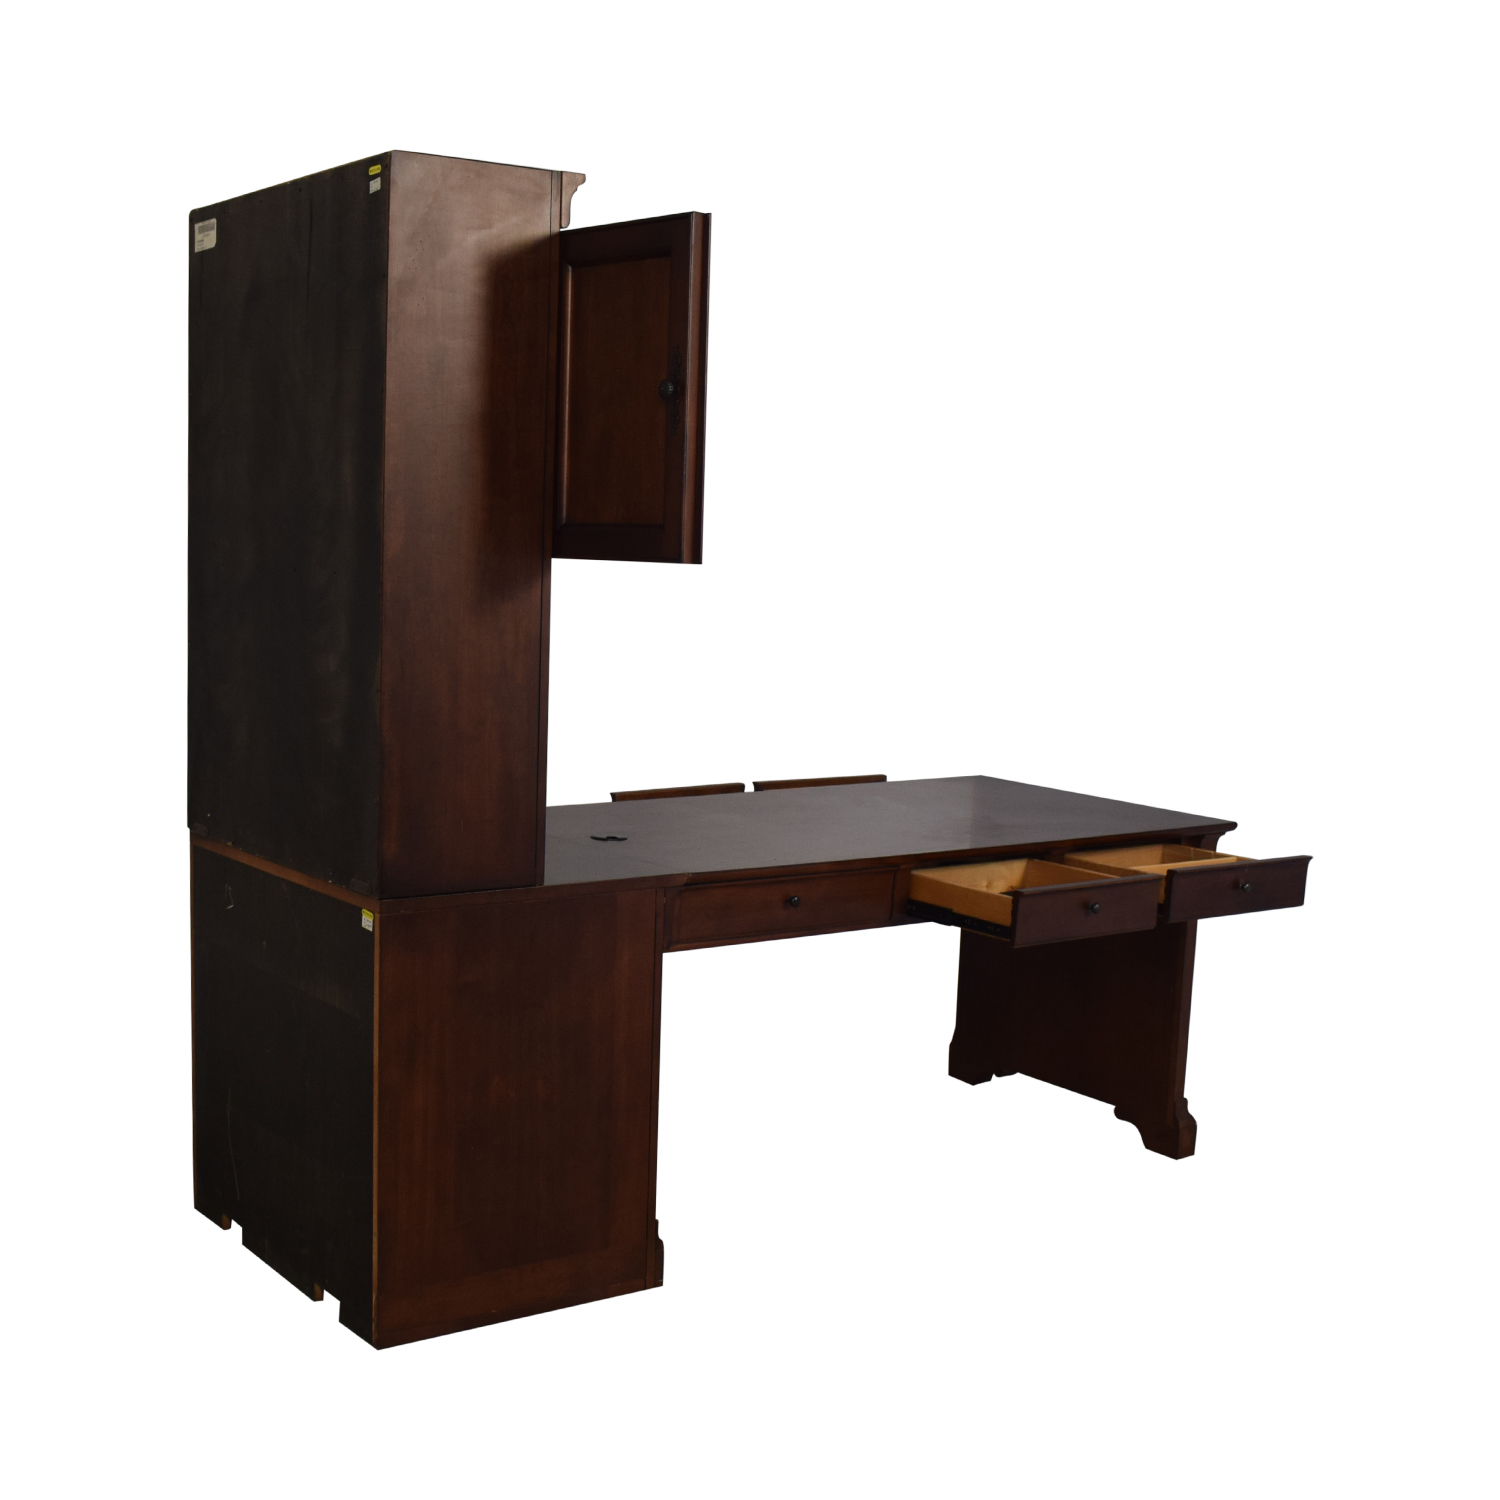 buy aspenhome aspenhome Desk with Hutch online